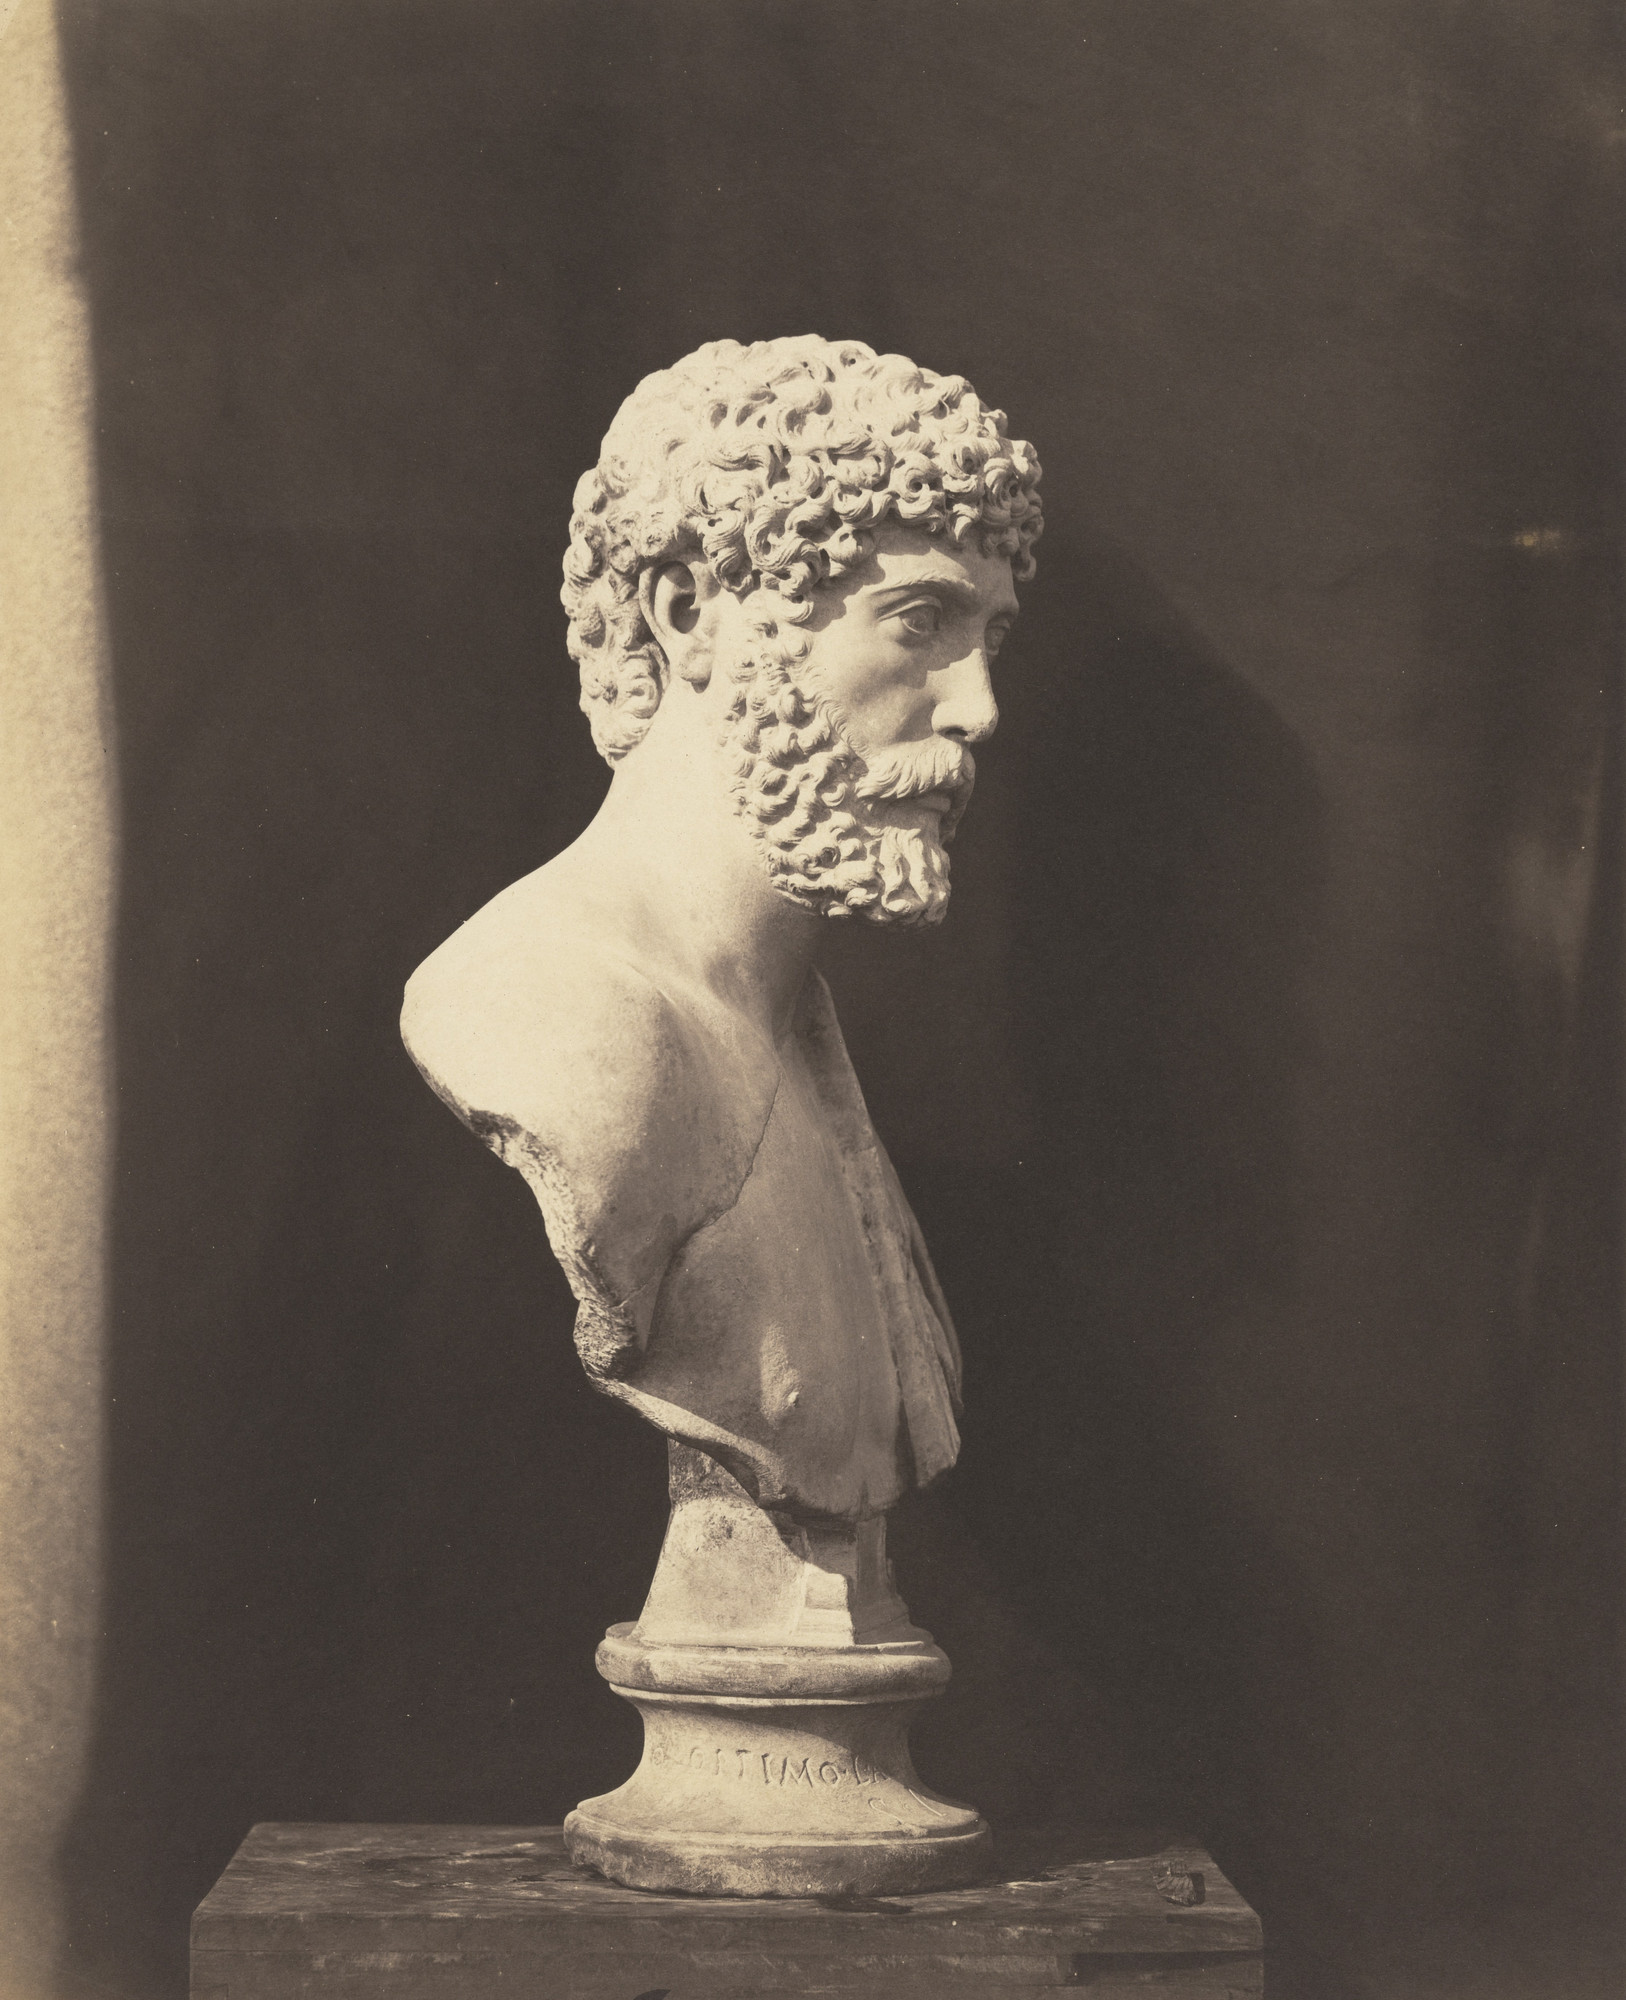 Roger Fenton. Roman Portrait Bust, British Museum, London. c. 1857